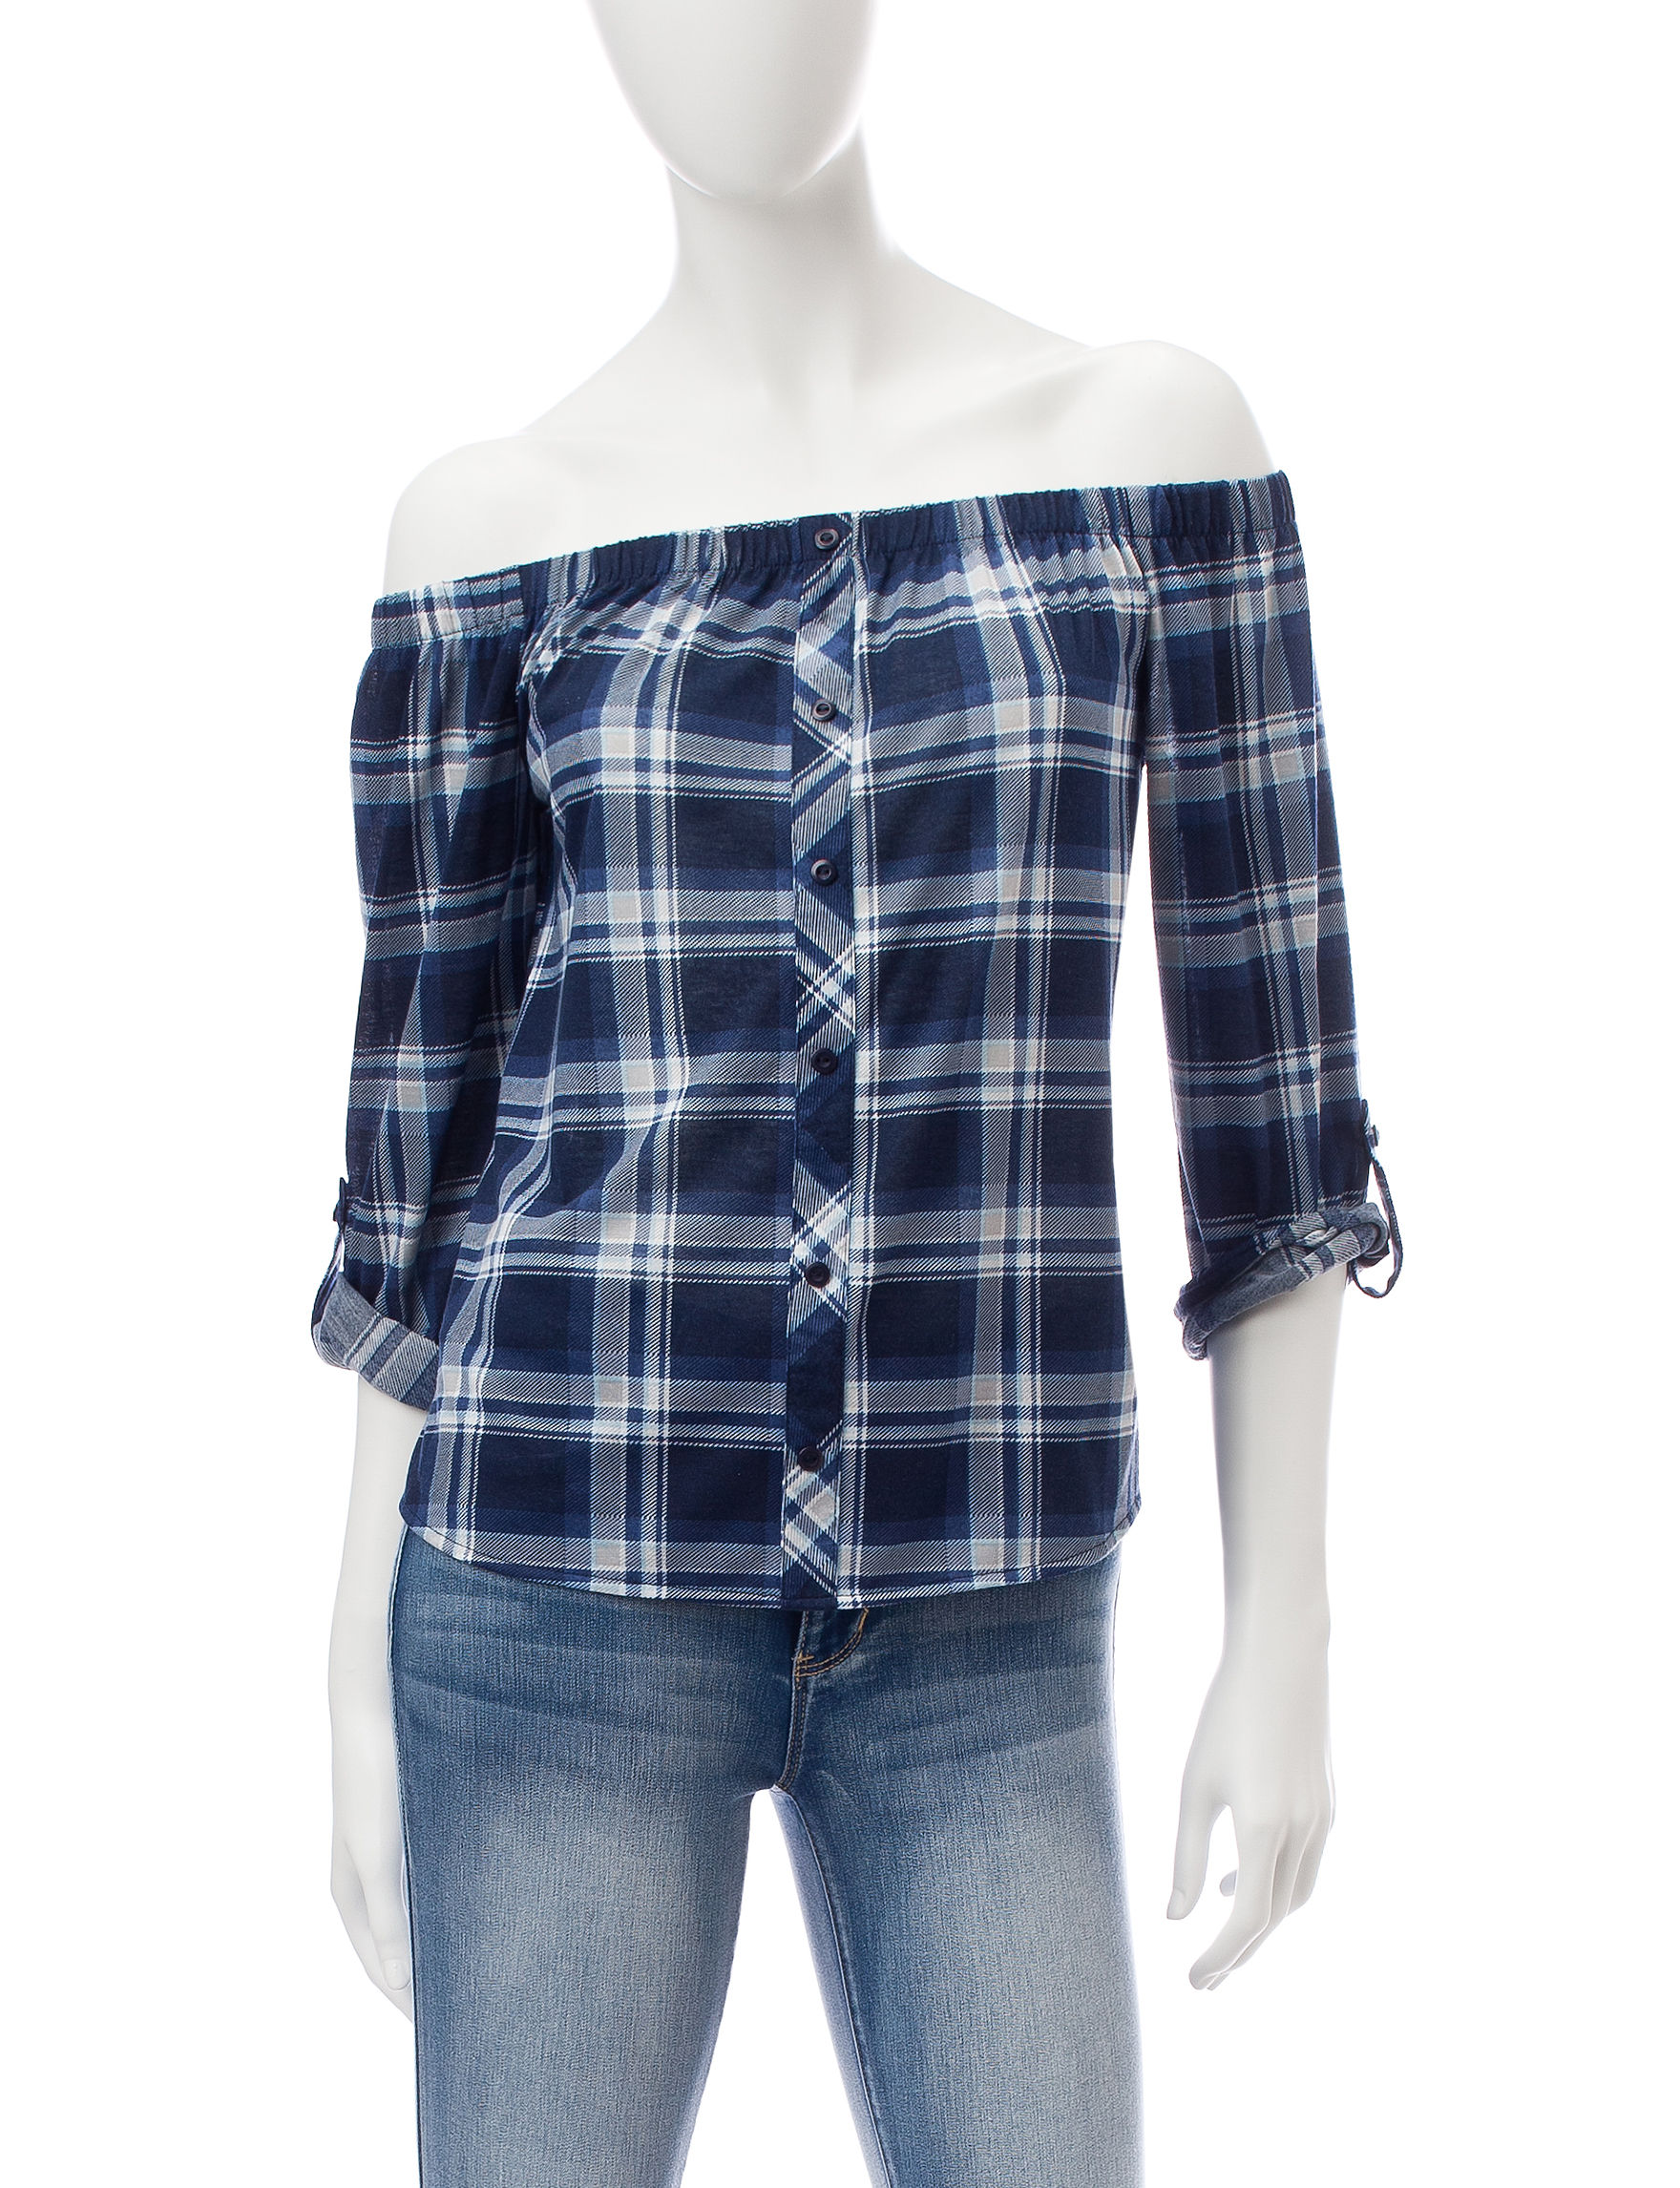 Wishful Park Blue / Plaid Shirts & Blouses